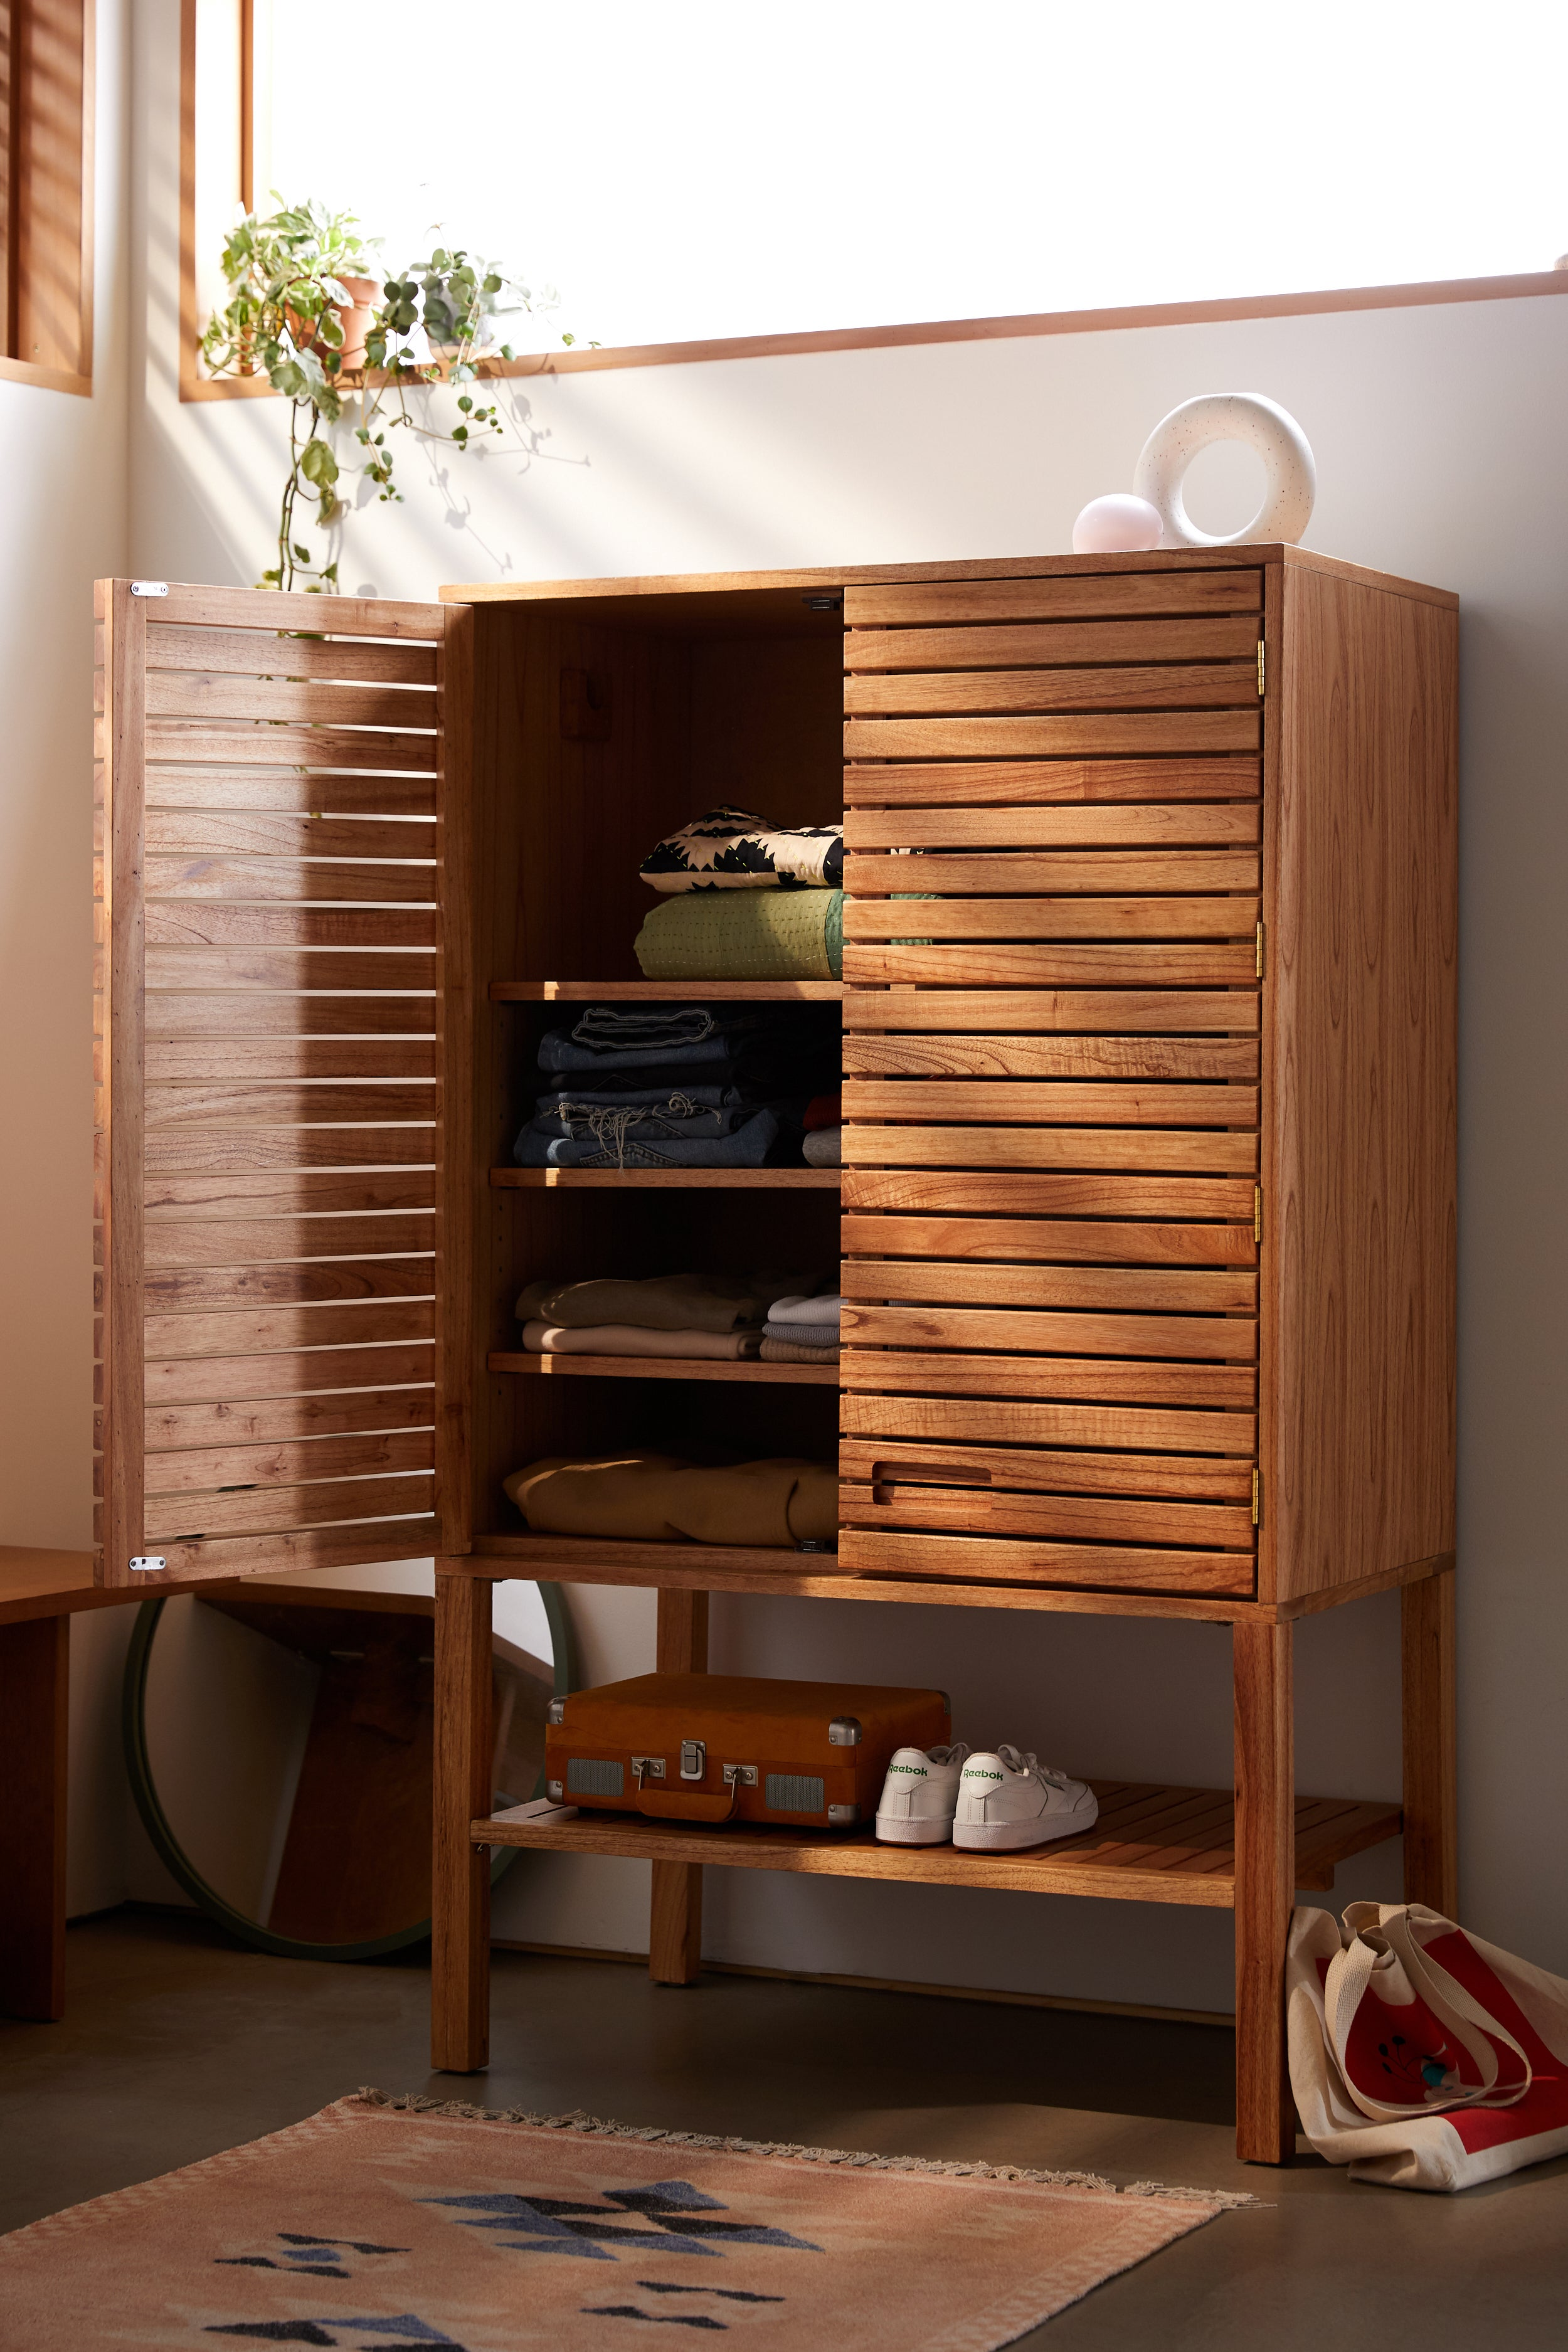 A slatted wood armoire with one door open and shoes on a bottom shelf